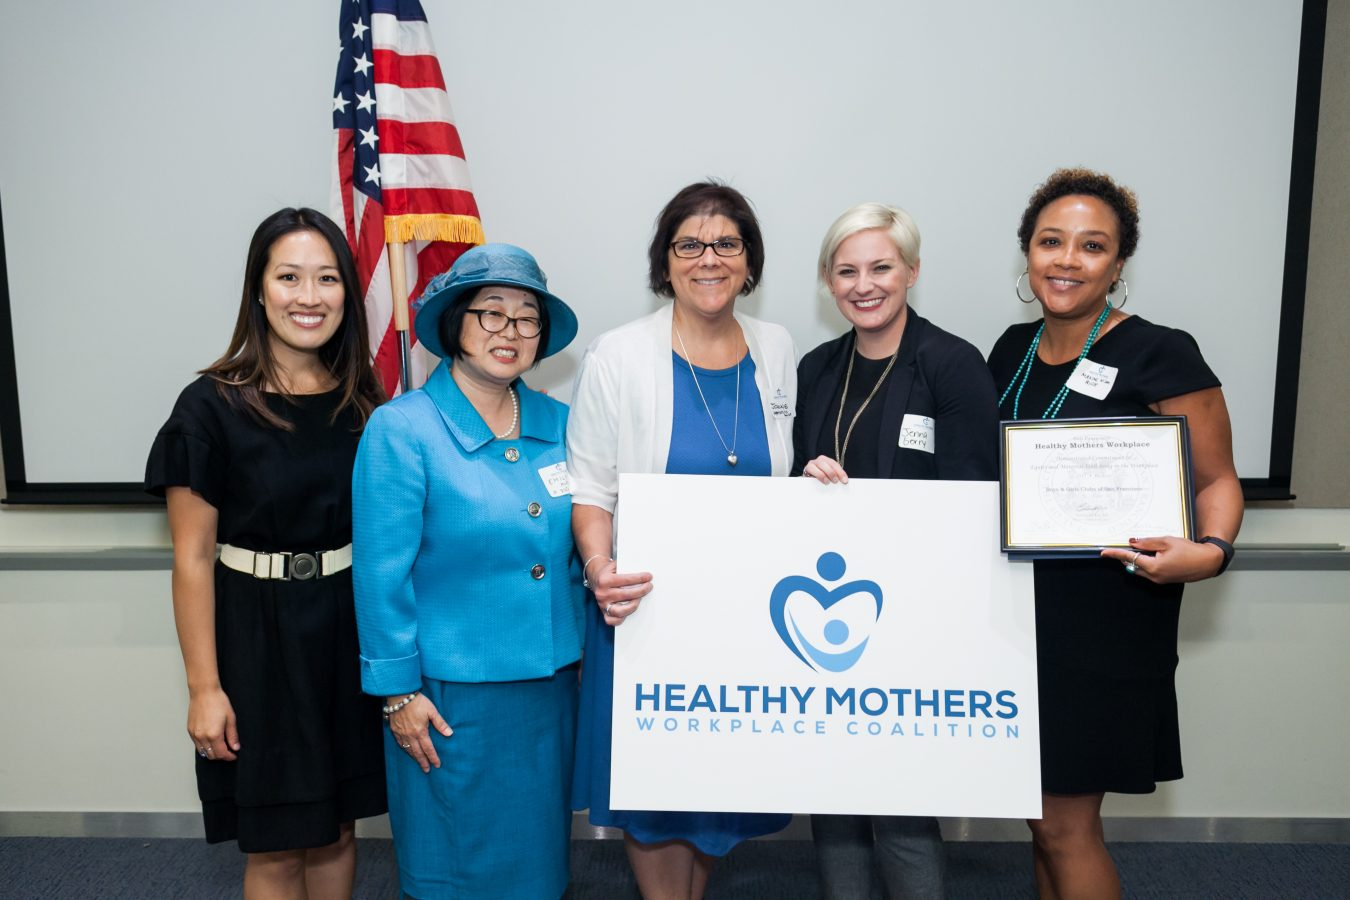 Announcing the 2018 Healthy Mothers Workplace Awards!